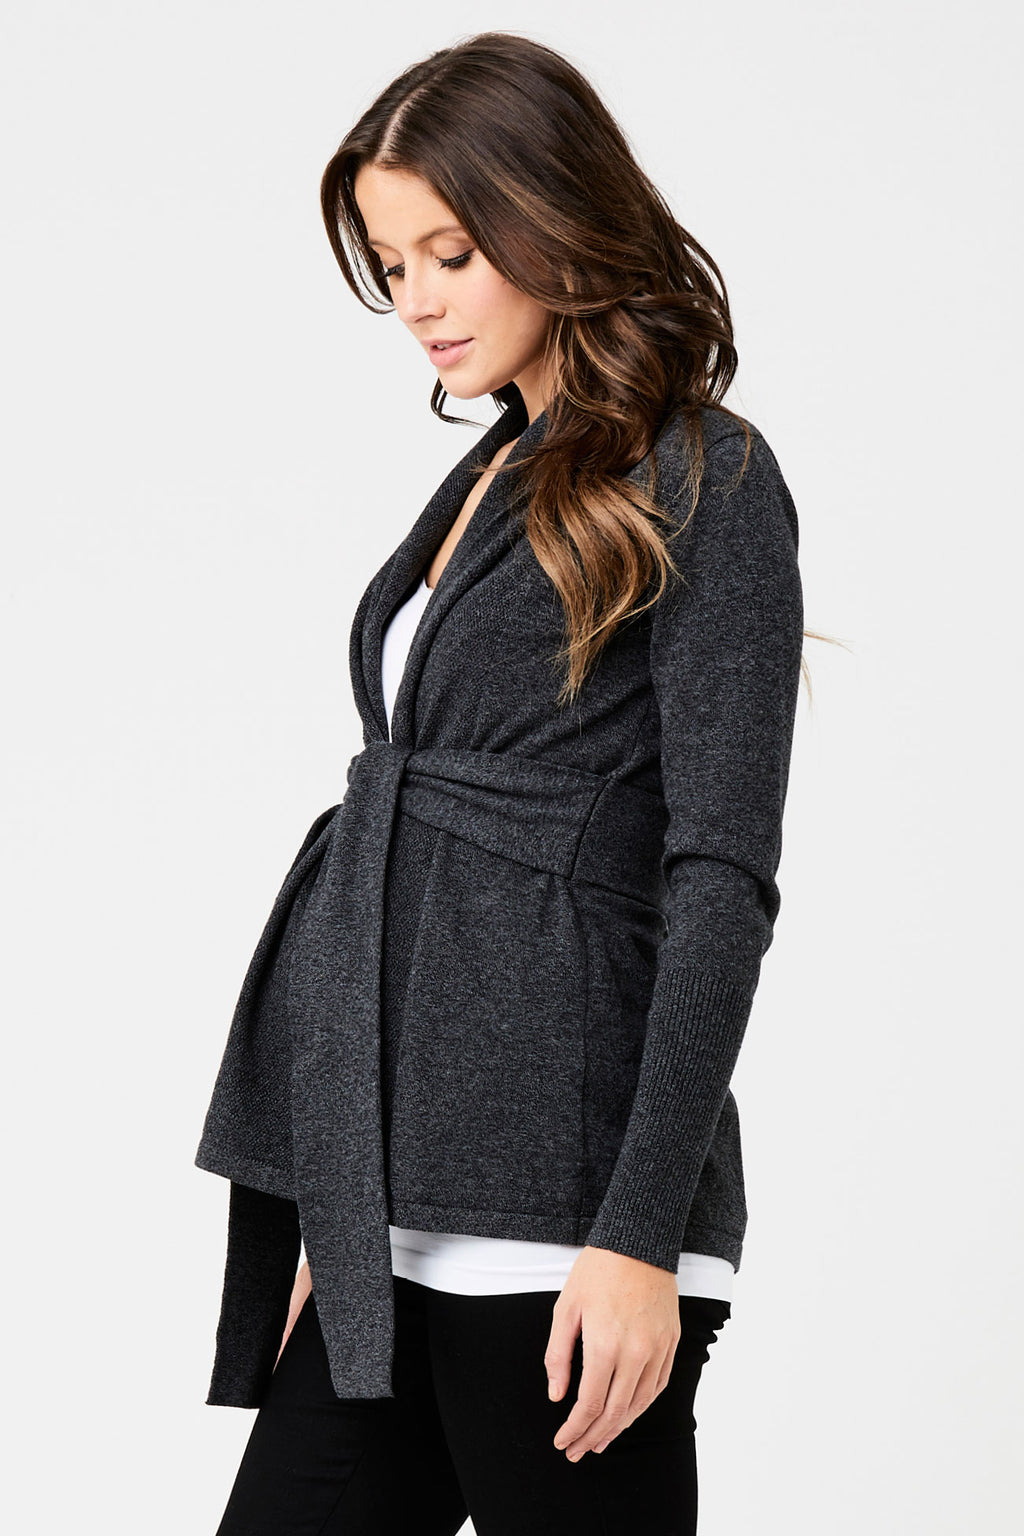 Charcoal Textured Wrap Cardi by Ripe - Seven Women Maternity